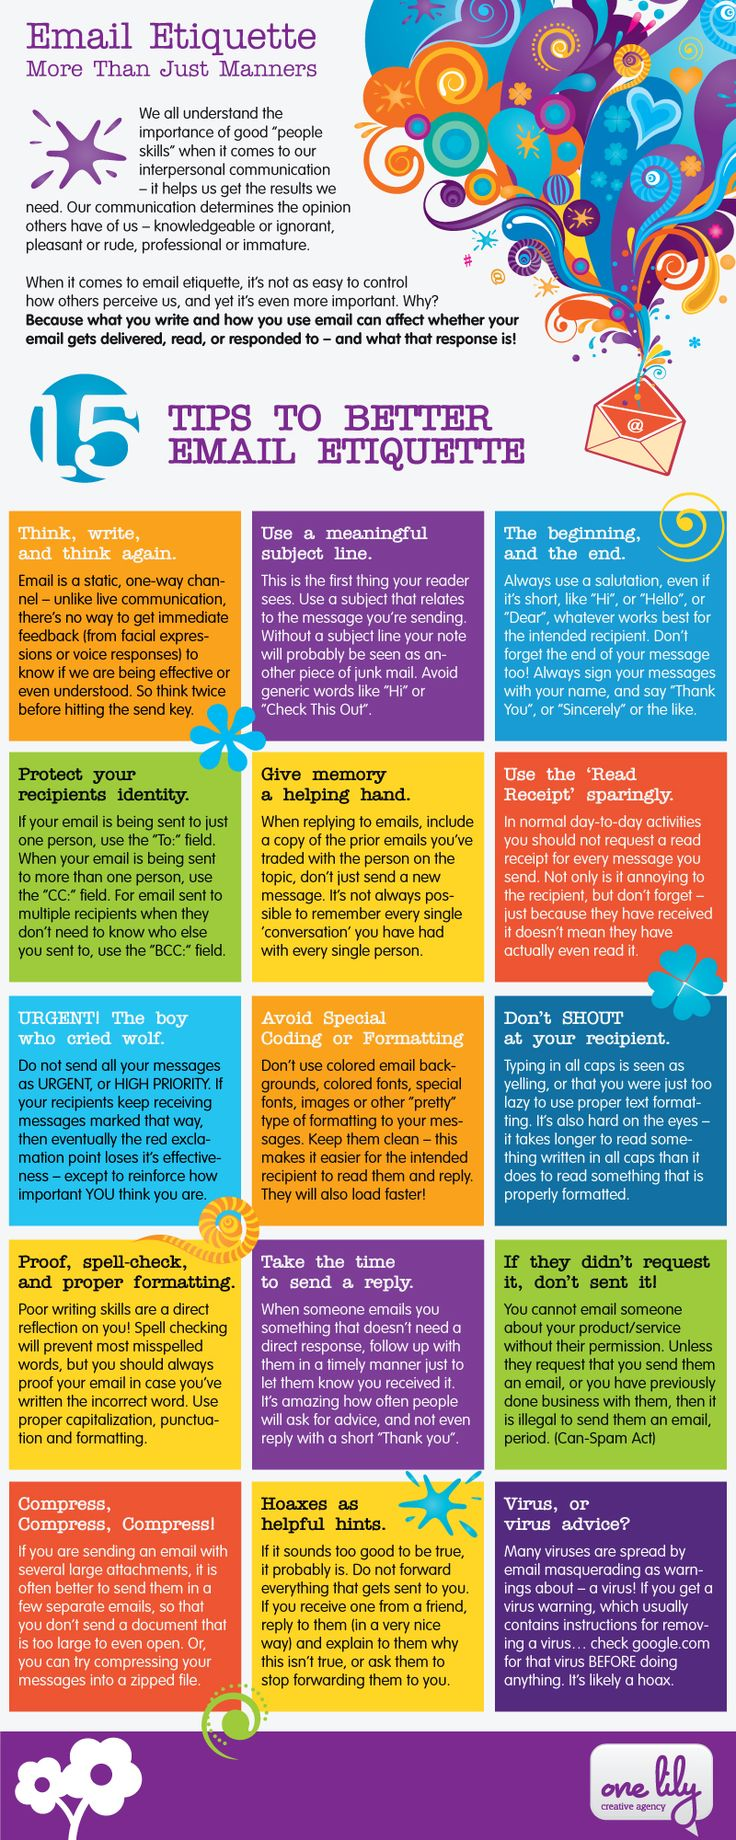 15 Tips on Writing Email for Business Communication [INFOGRAPHIC]